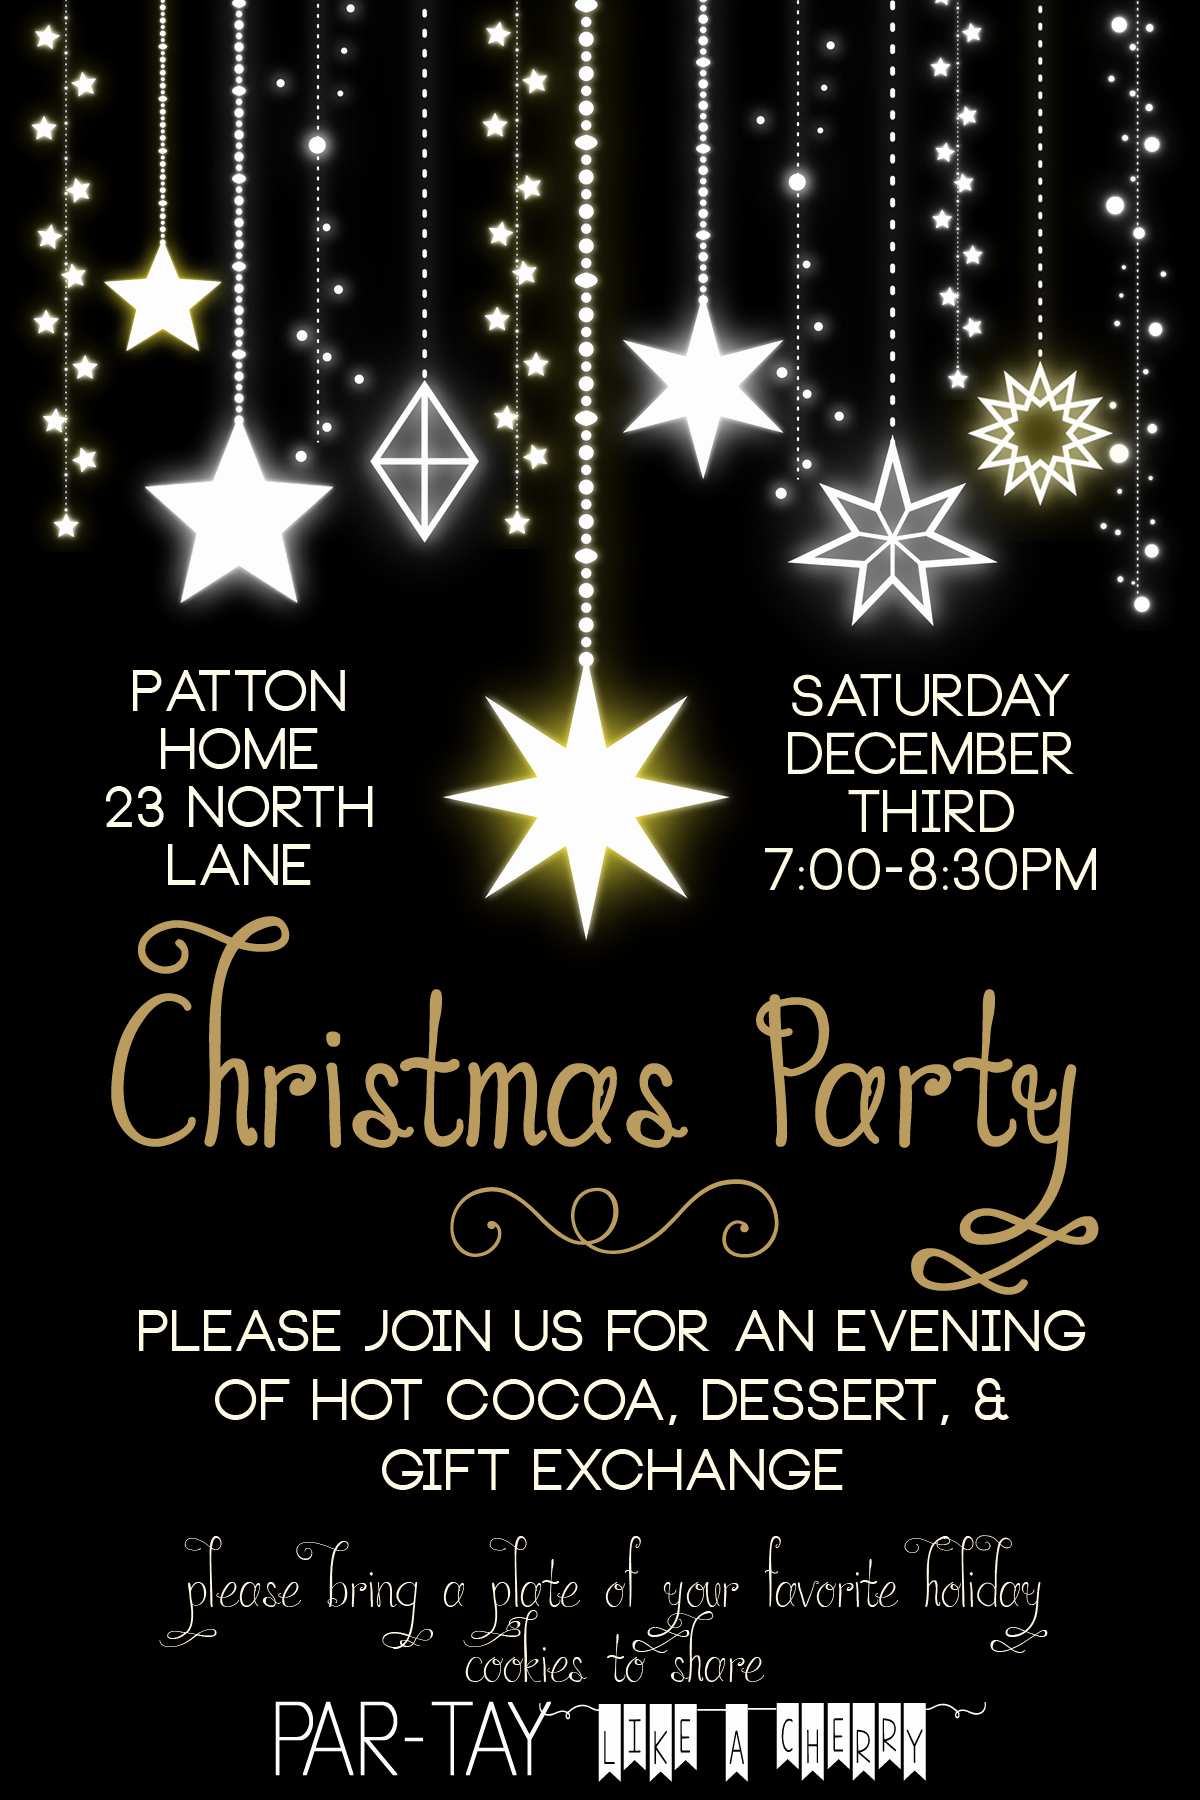 Free Christmas Party Invitations Template Elegant Free Christmas Party Invitation Party Like A Cherry